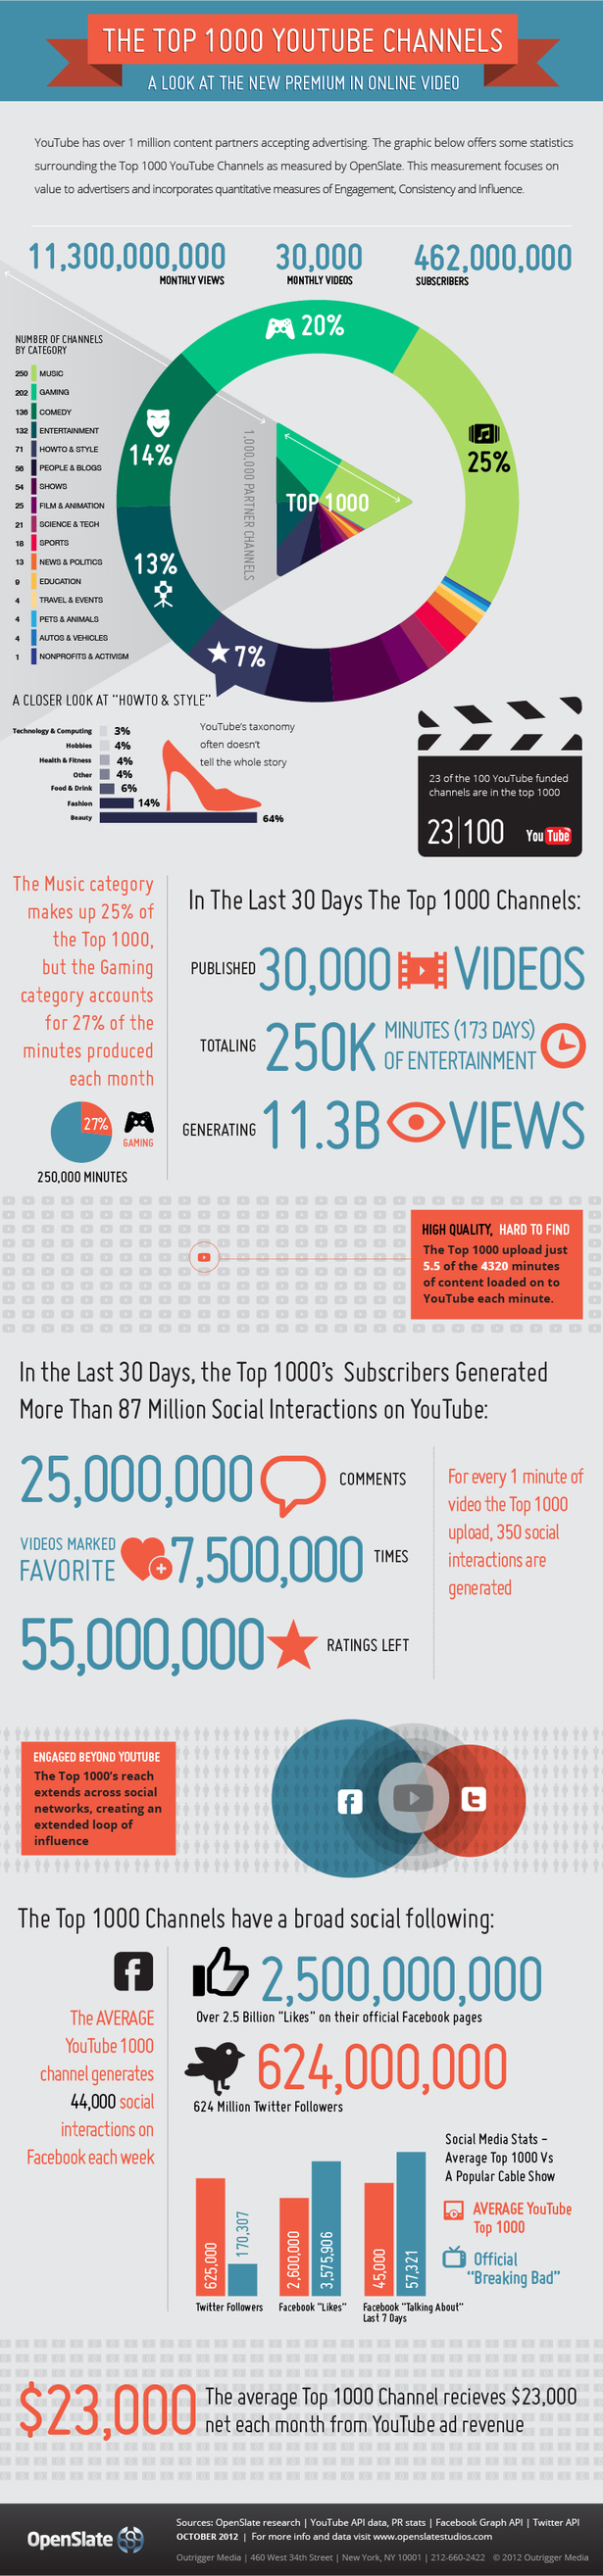 youtube-top-1000-channels-blog-full